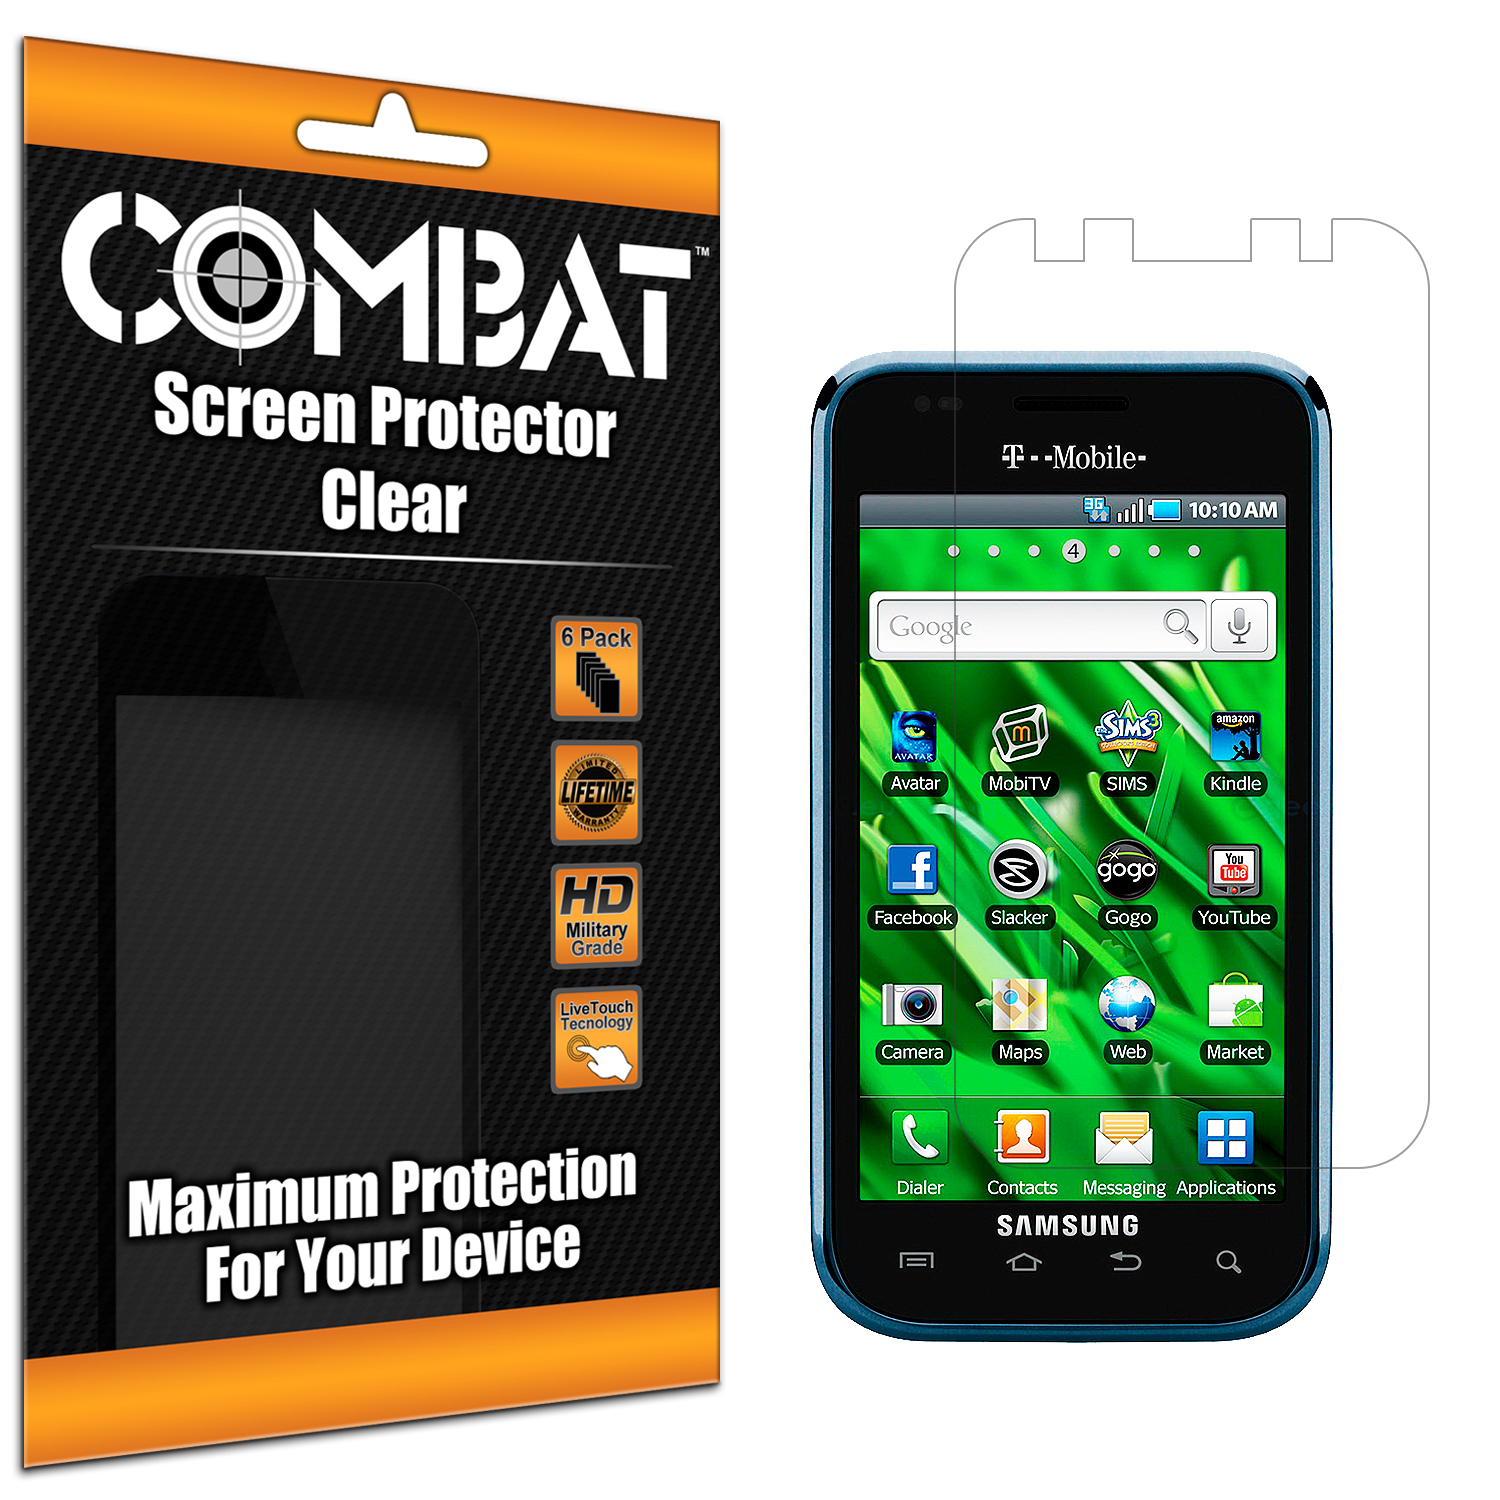 Samsung Vibrant SCH-T959 Combat 6 Pack HD Clear Screen Protector